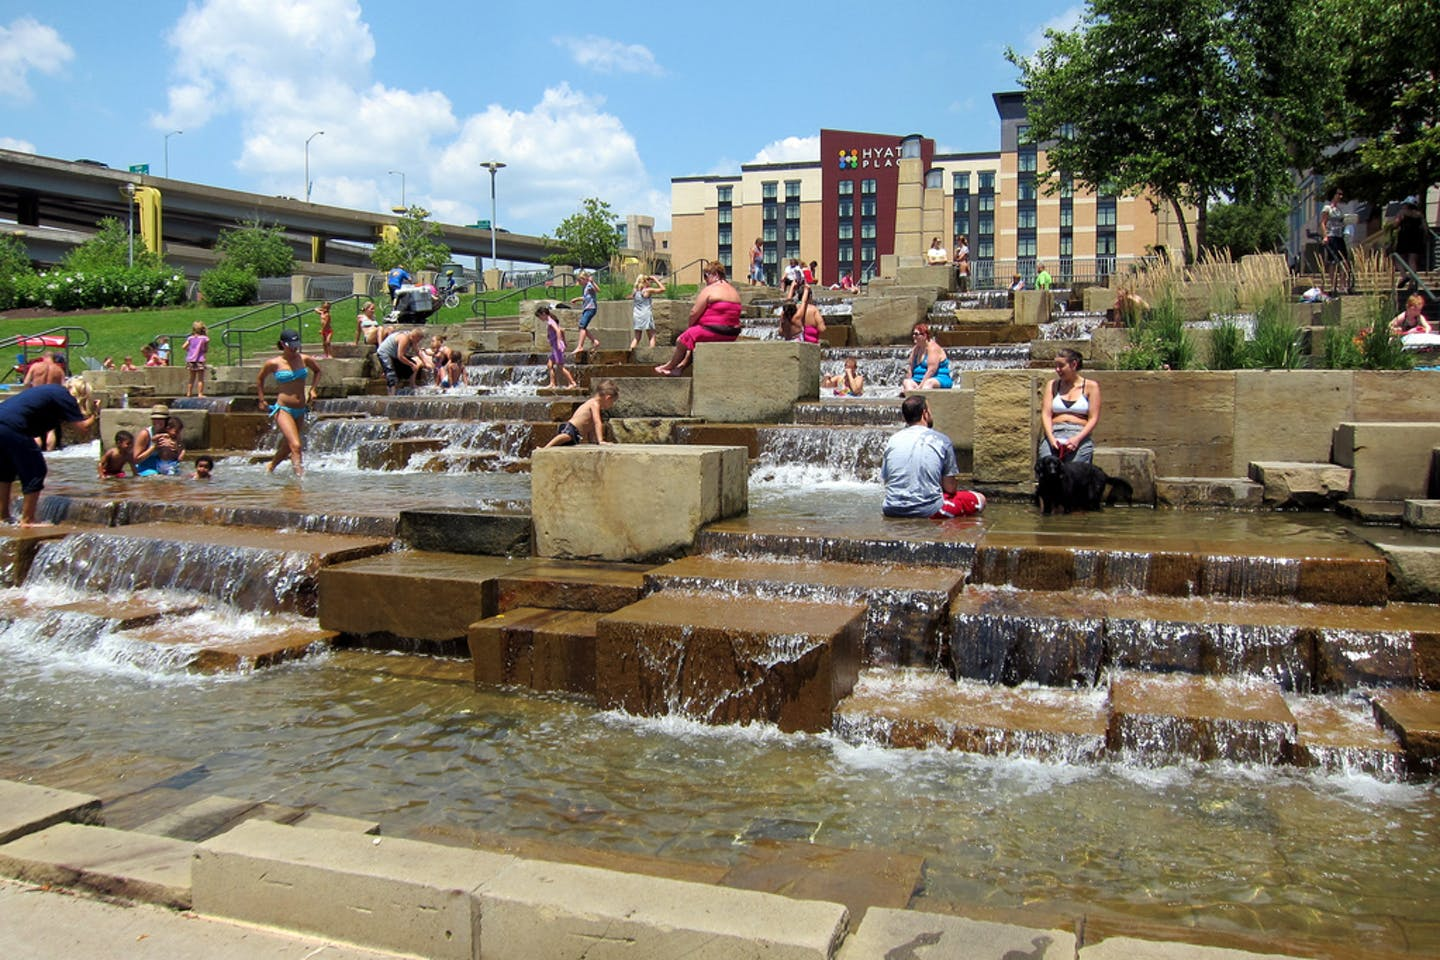 People of Pittsburgh cooling off in a public water fountain